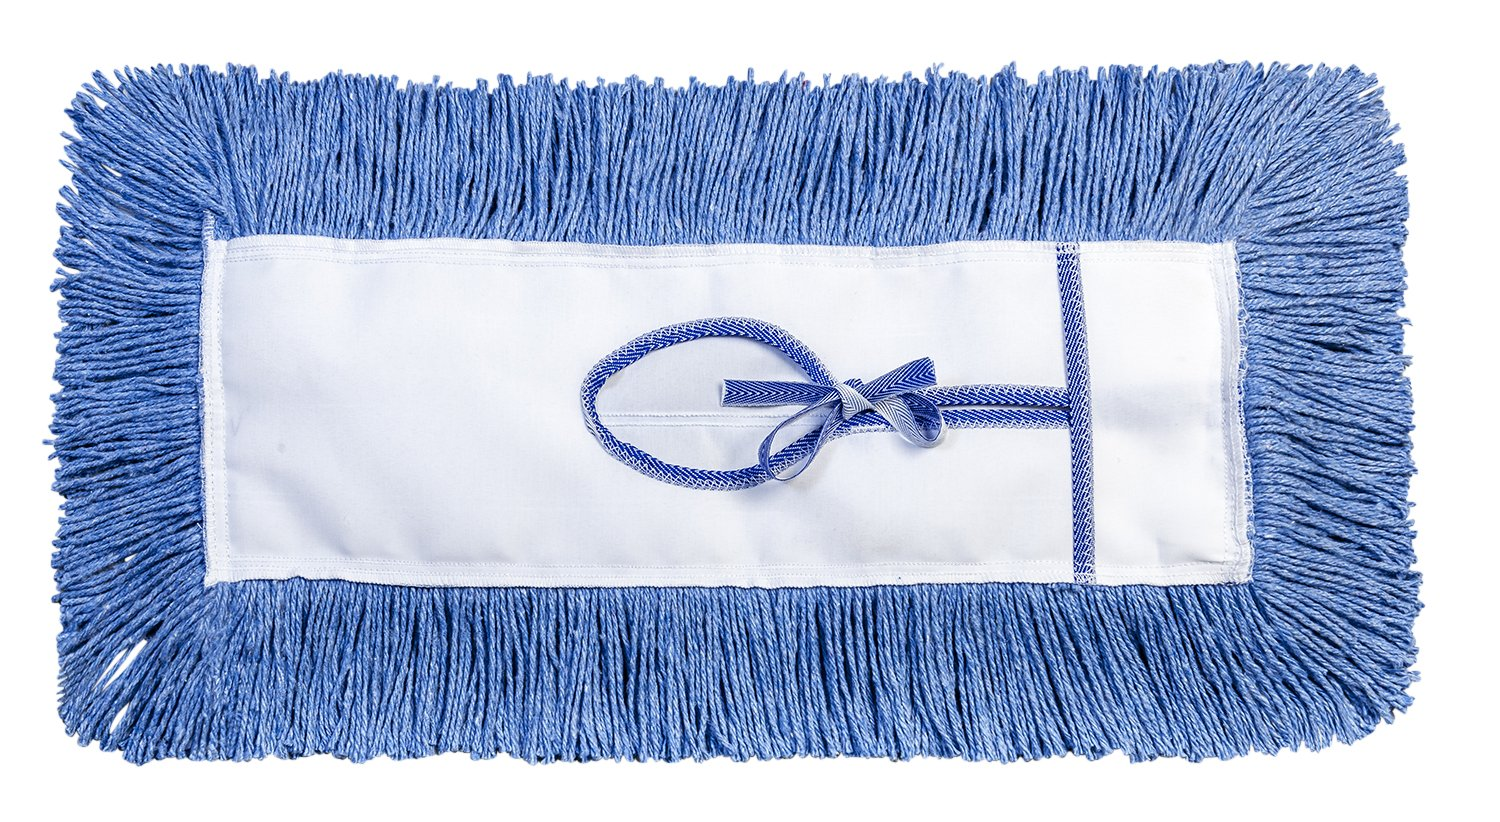 M2 Professional G-STAT Dust Mop Head with Key Hole (Tie-On) Backing, 48-Inch Length x 5-Inch Width - Case of 6 - For Industrial, Commercial & Home Uses, Perfect for Hardwood, Laminate, Concrete, etc. by M2 Professional Cleaning Products Ltd.